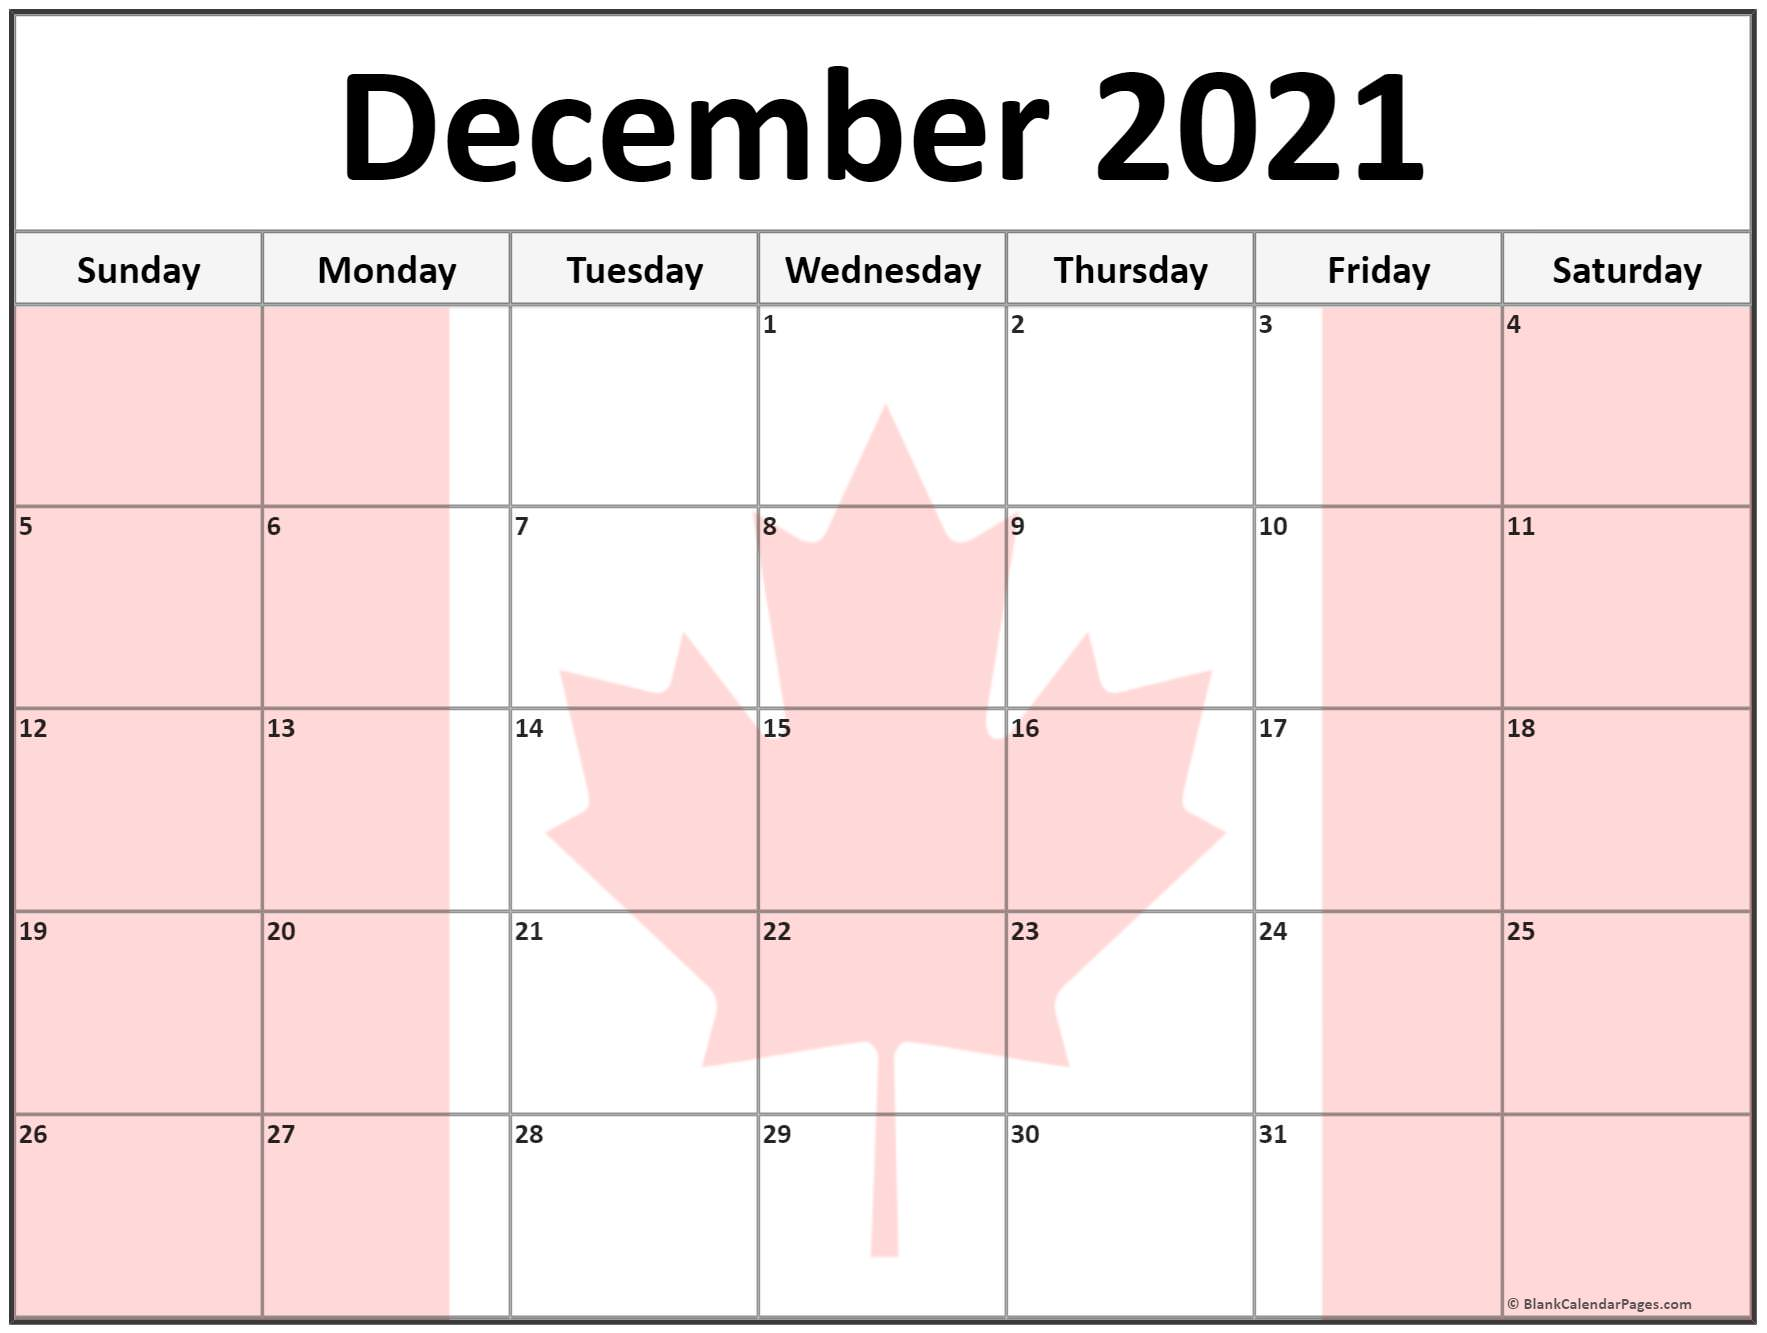 December 2020 Canada flag monthly calendar printout